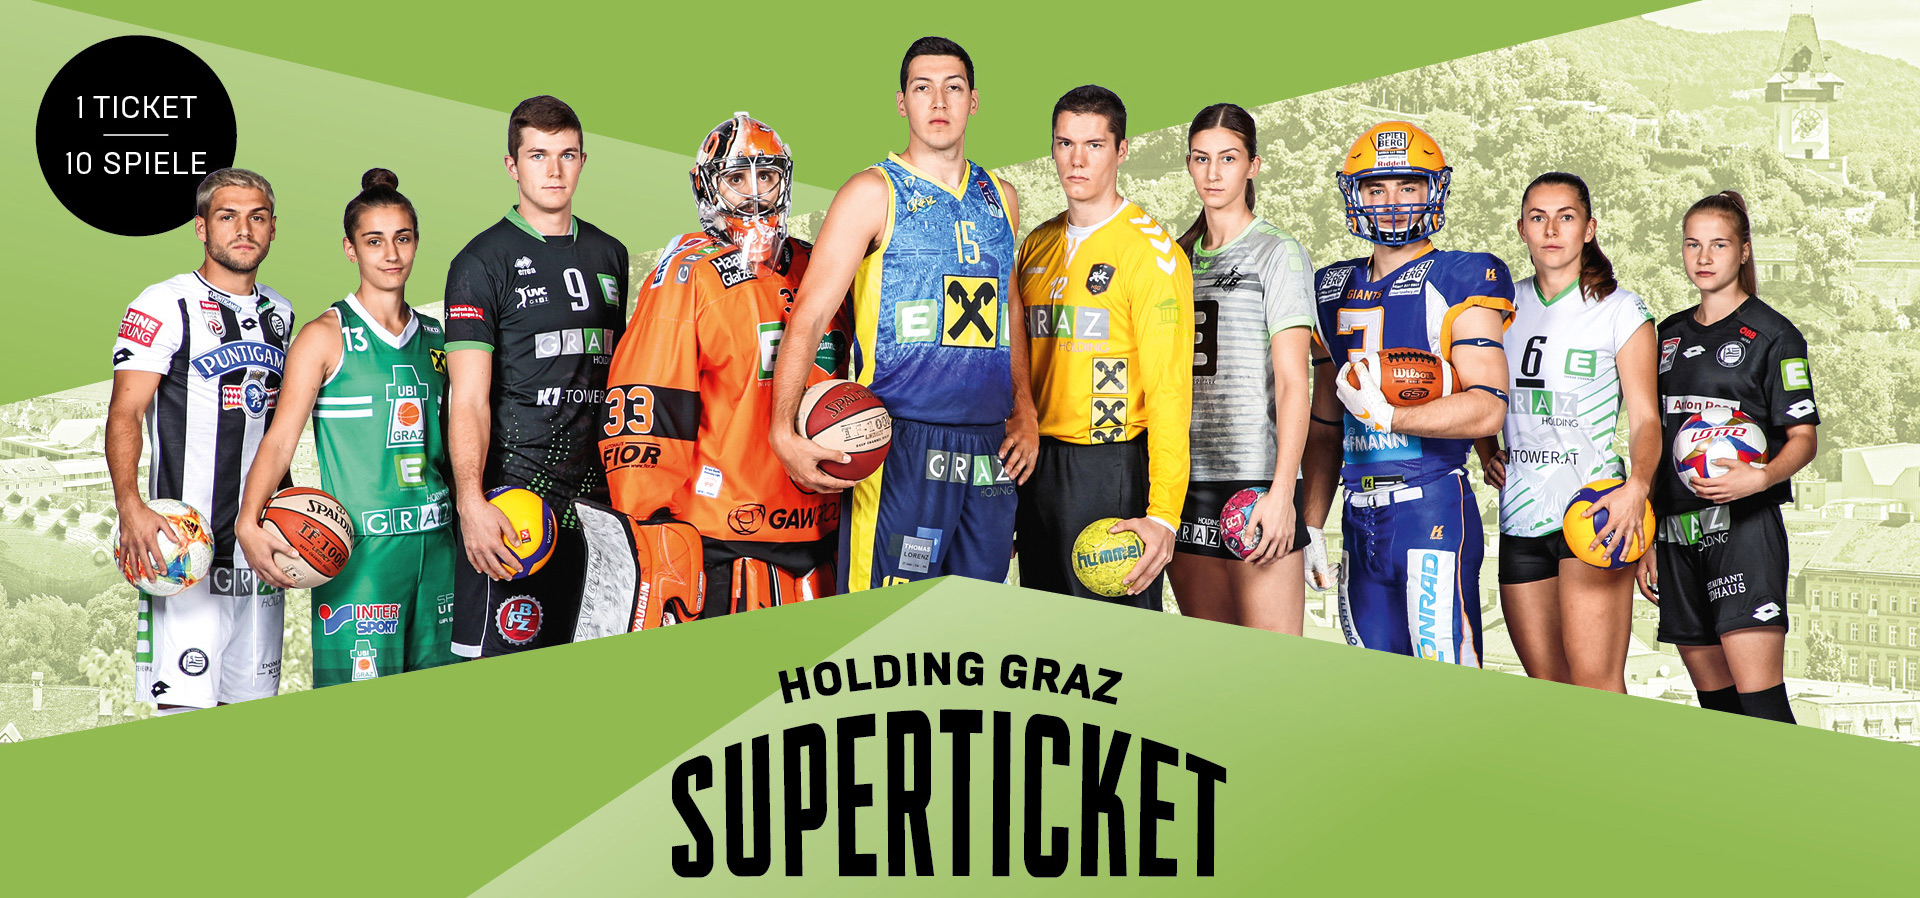 Superticket 2019 / 2020 Graz